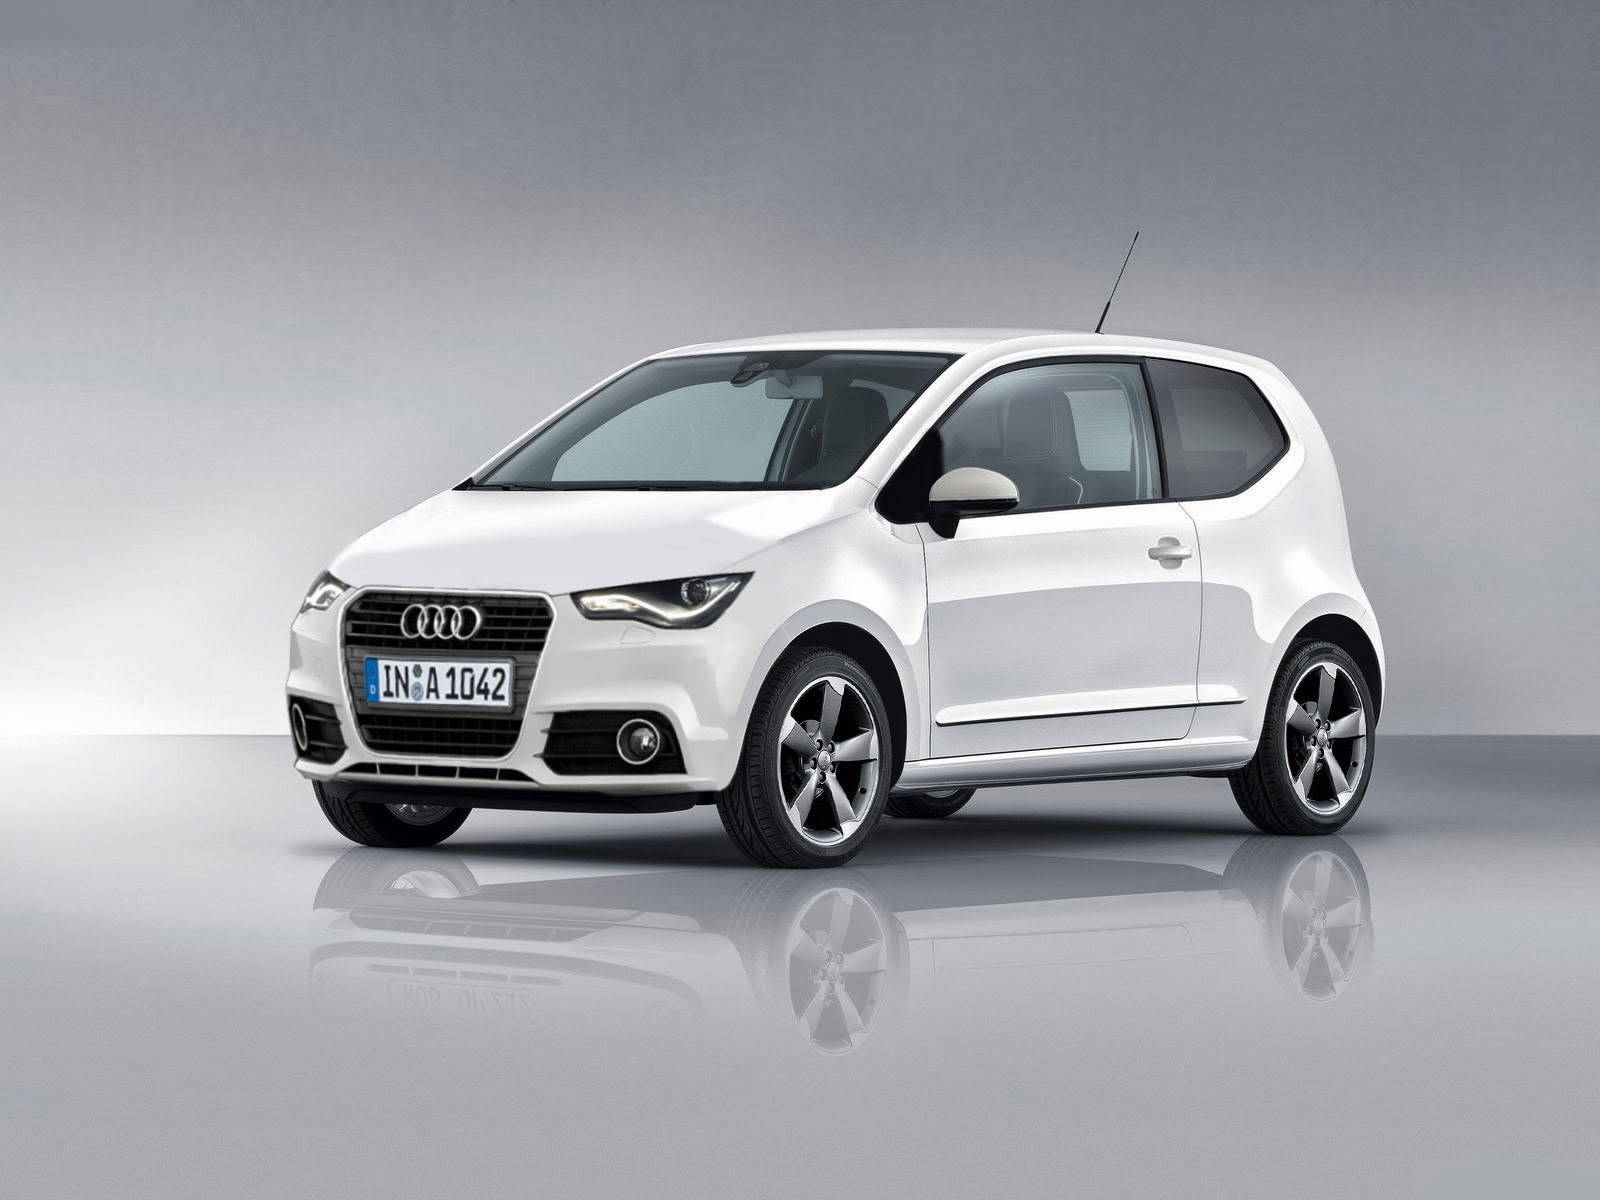 roj fashion lifestyle could this be the new audi a2 a0. Black Bedroom Furniture Sets. Home Design Ideas